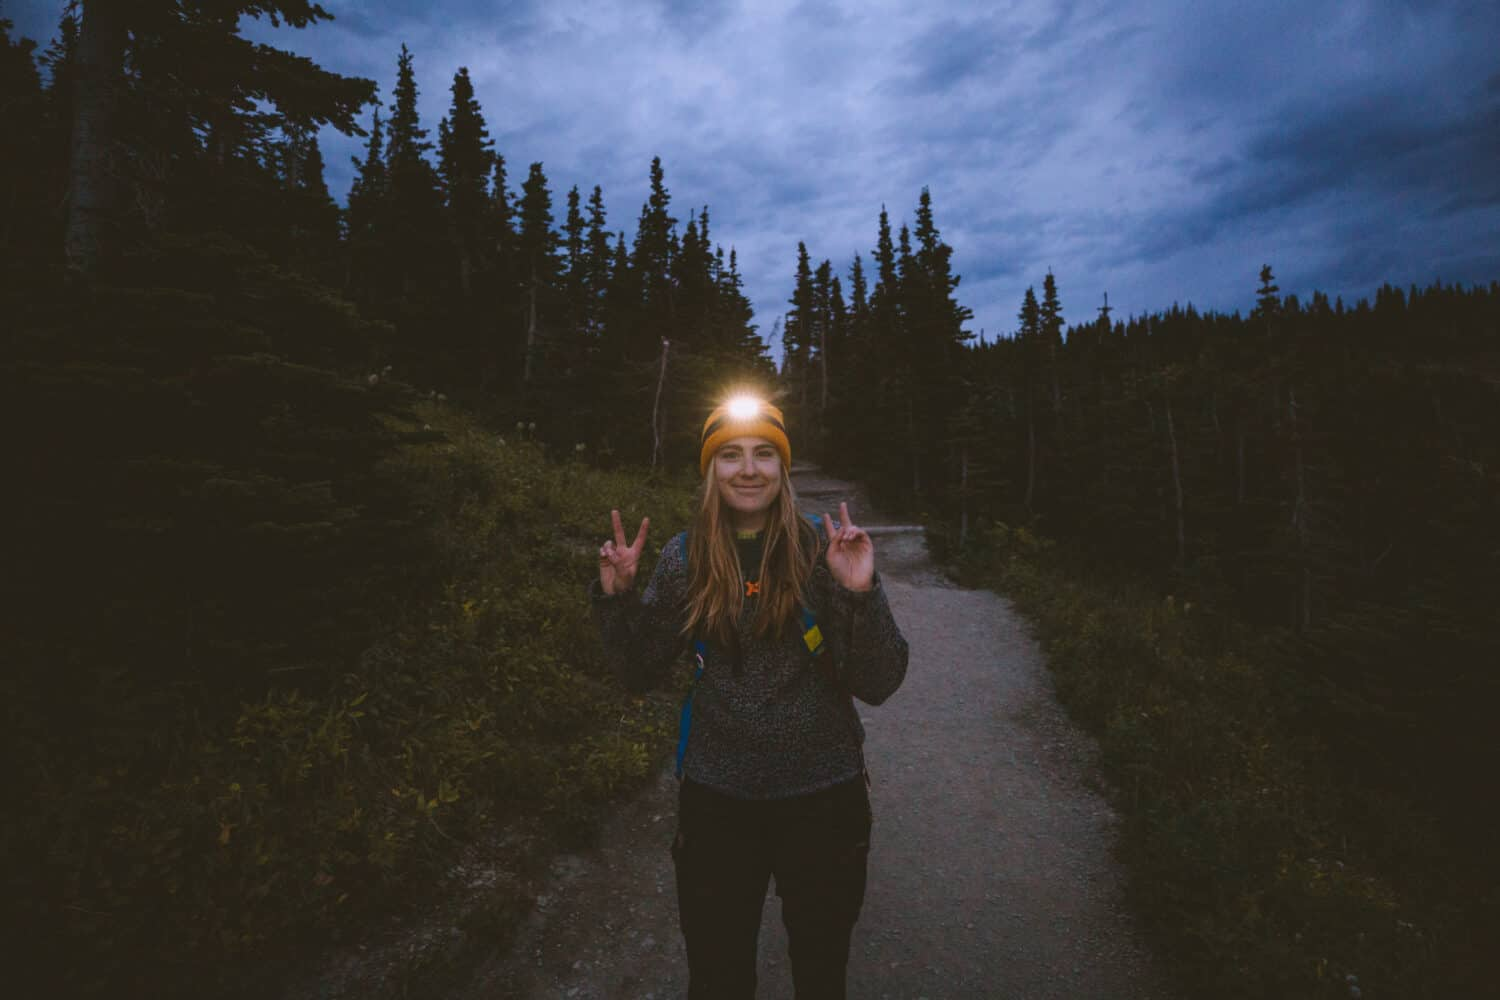 Emily Mandagie wearing headlamp during hike in Glacier National Park - TheMandagies.com